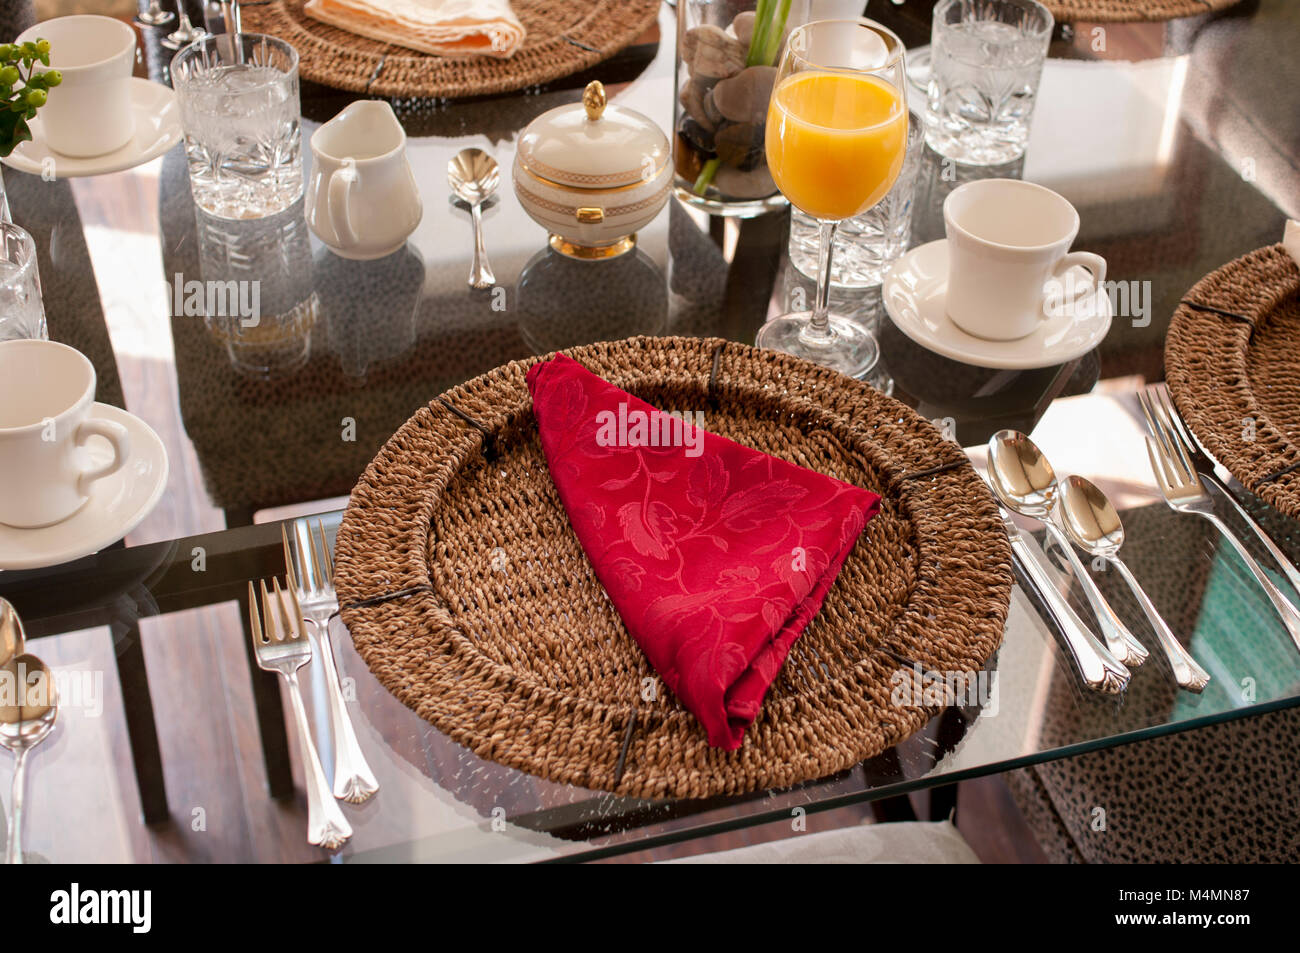 A glass table setting for brunch with glasses, cups, saucers, utensils, wicker placemats, and folded cloth napkin Stock Photo